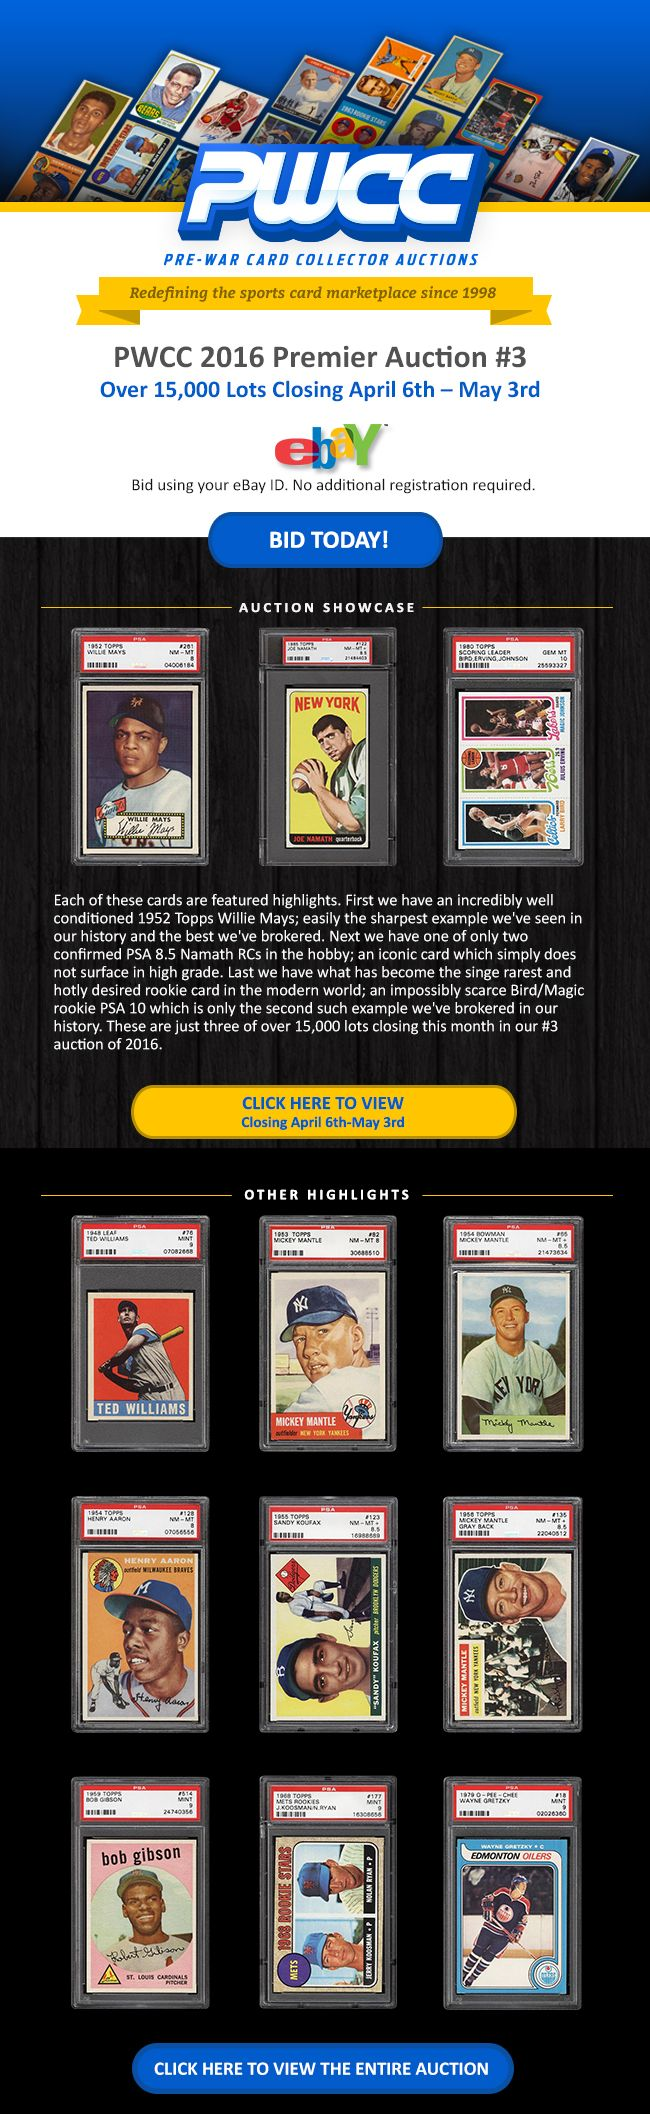 1948 Leaf Williams PSA 9, 53 Topps Mantle PSA 8, 52 Topps Mays PSA 8 and more, Highlight PWCC Premier Auction #3 1